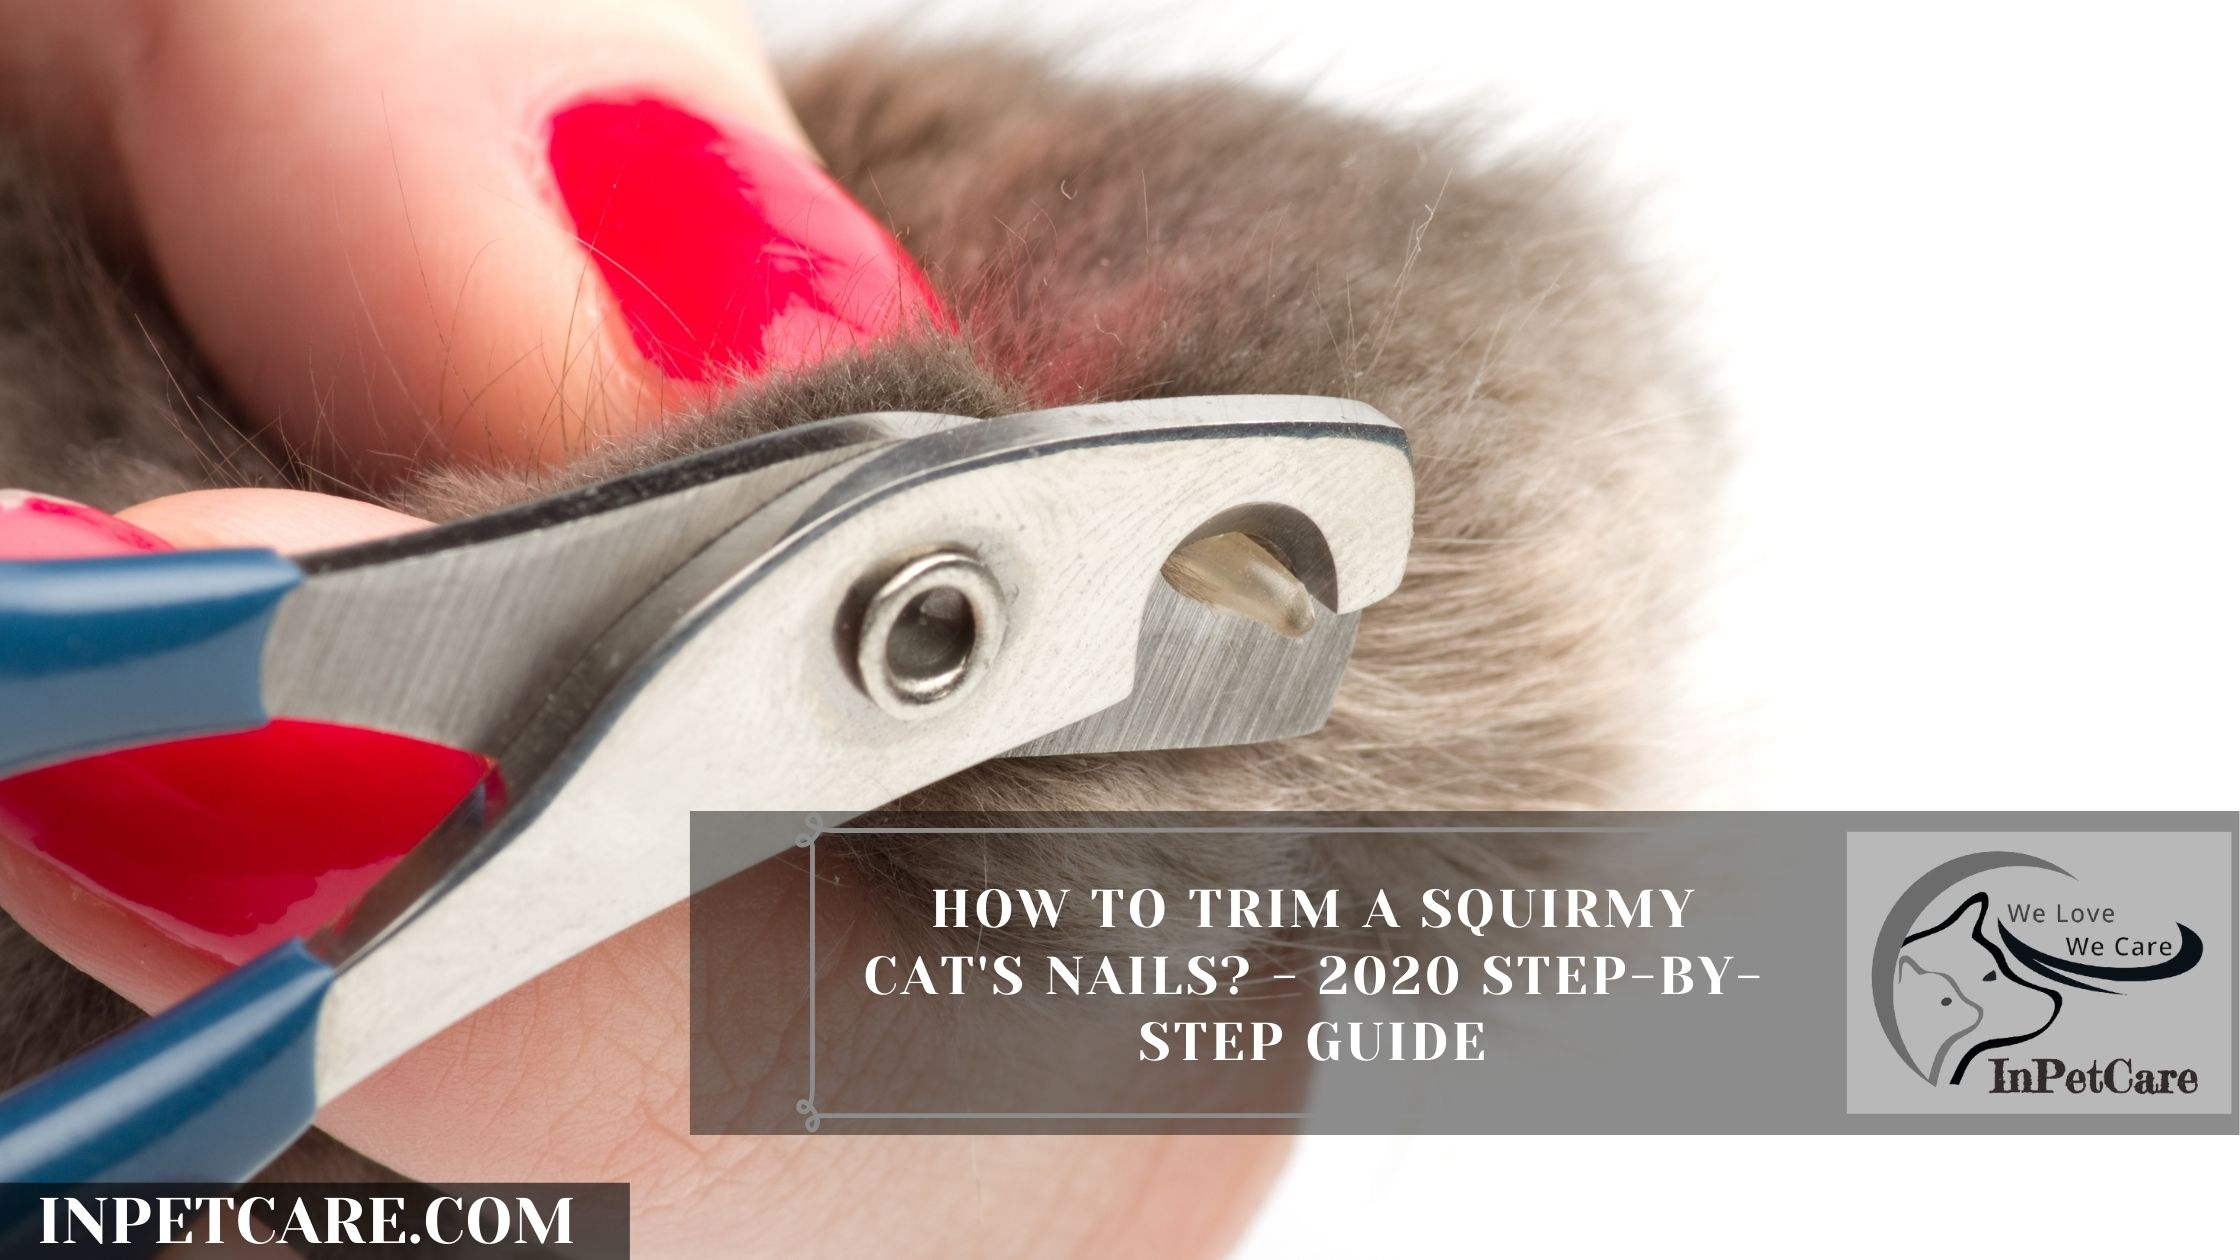 How to Trim a Squirmy Cat's Nails? A Complete Guide